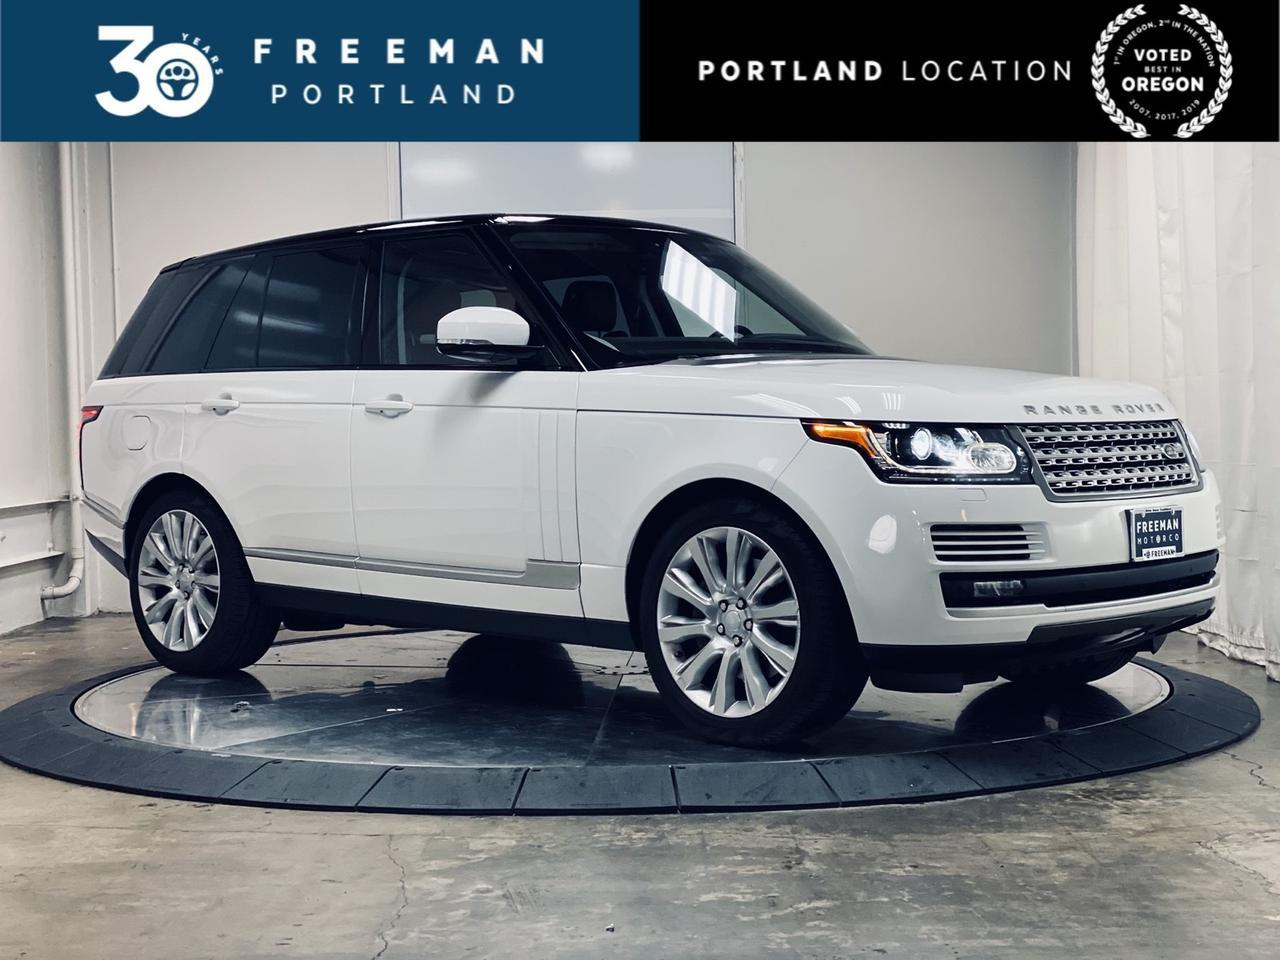 2017 Land Rover Range Rover Supercharged Adaptive Cruise Control Heated & Cooled Seats Portland OR